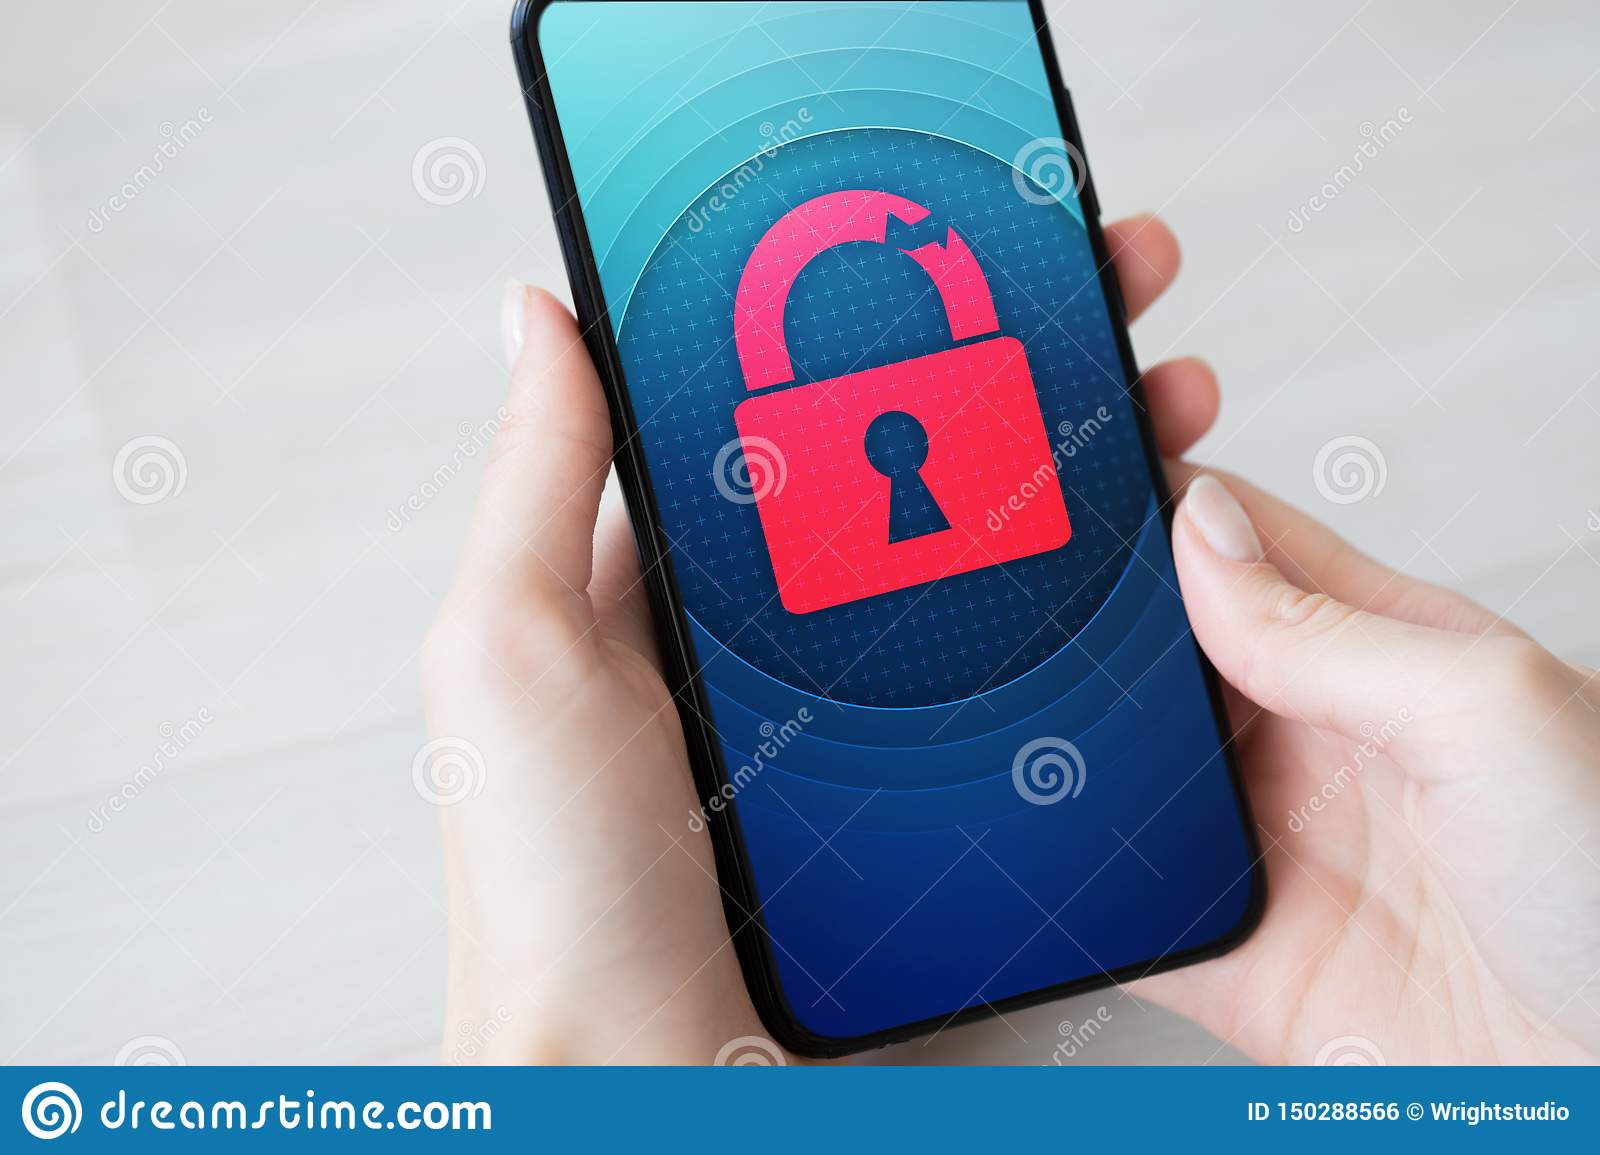 Security breach unlock padlock icon on mobile phone screen. Cyber protection concept.